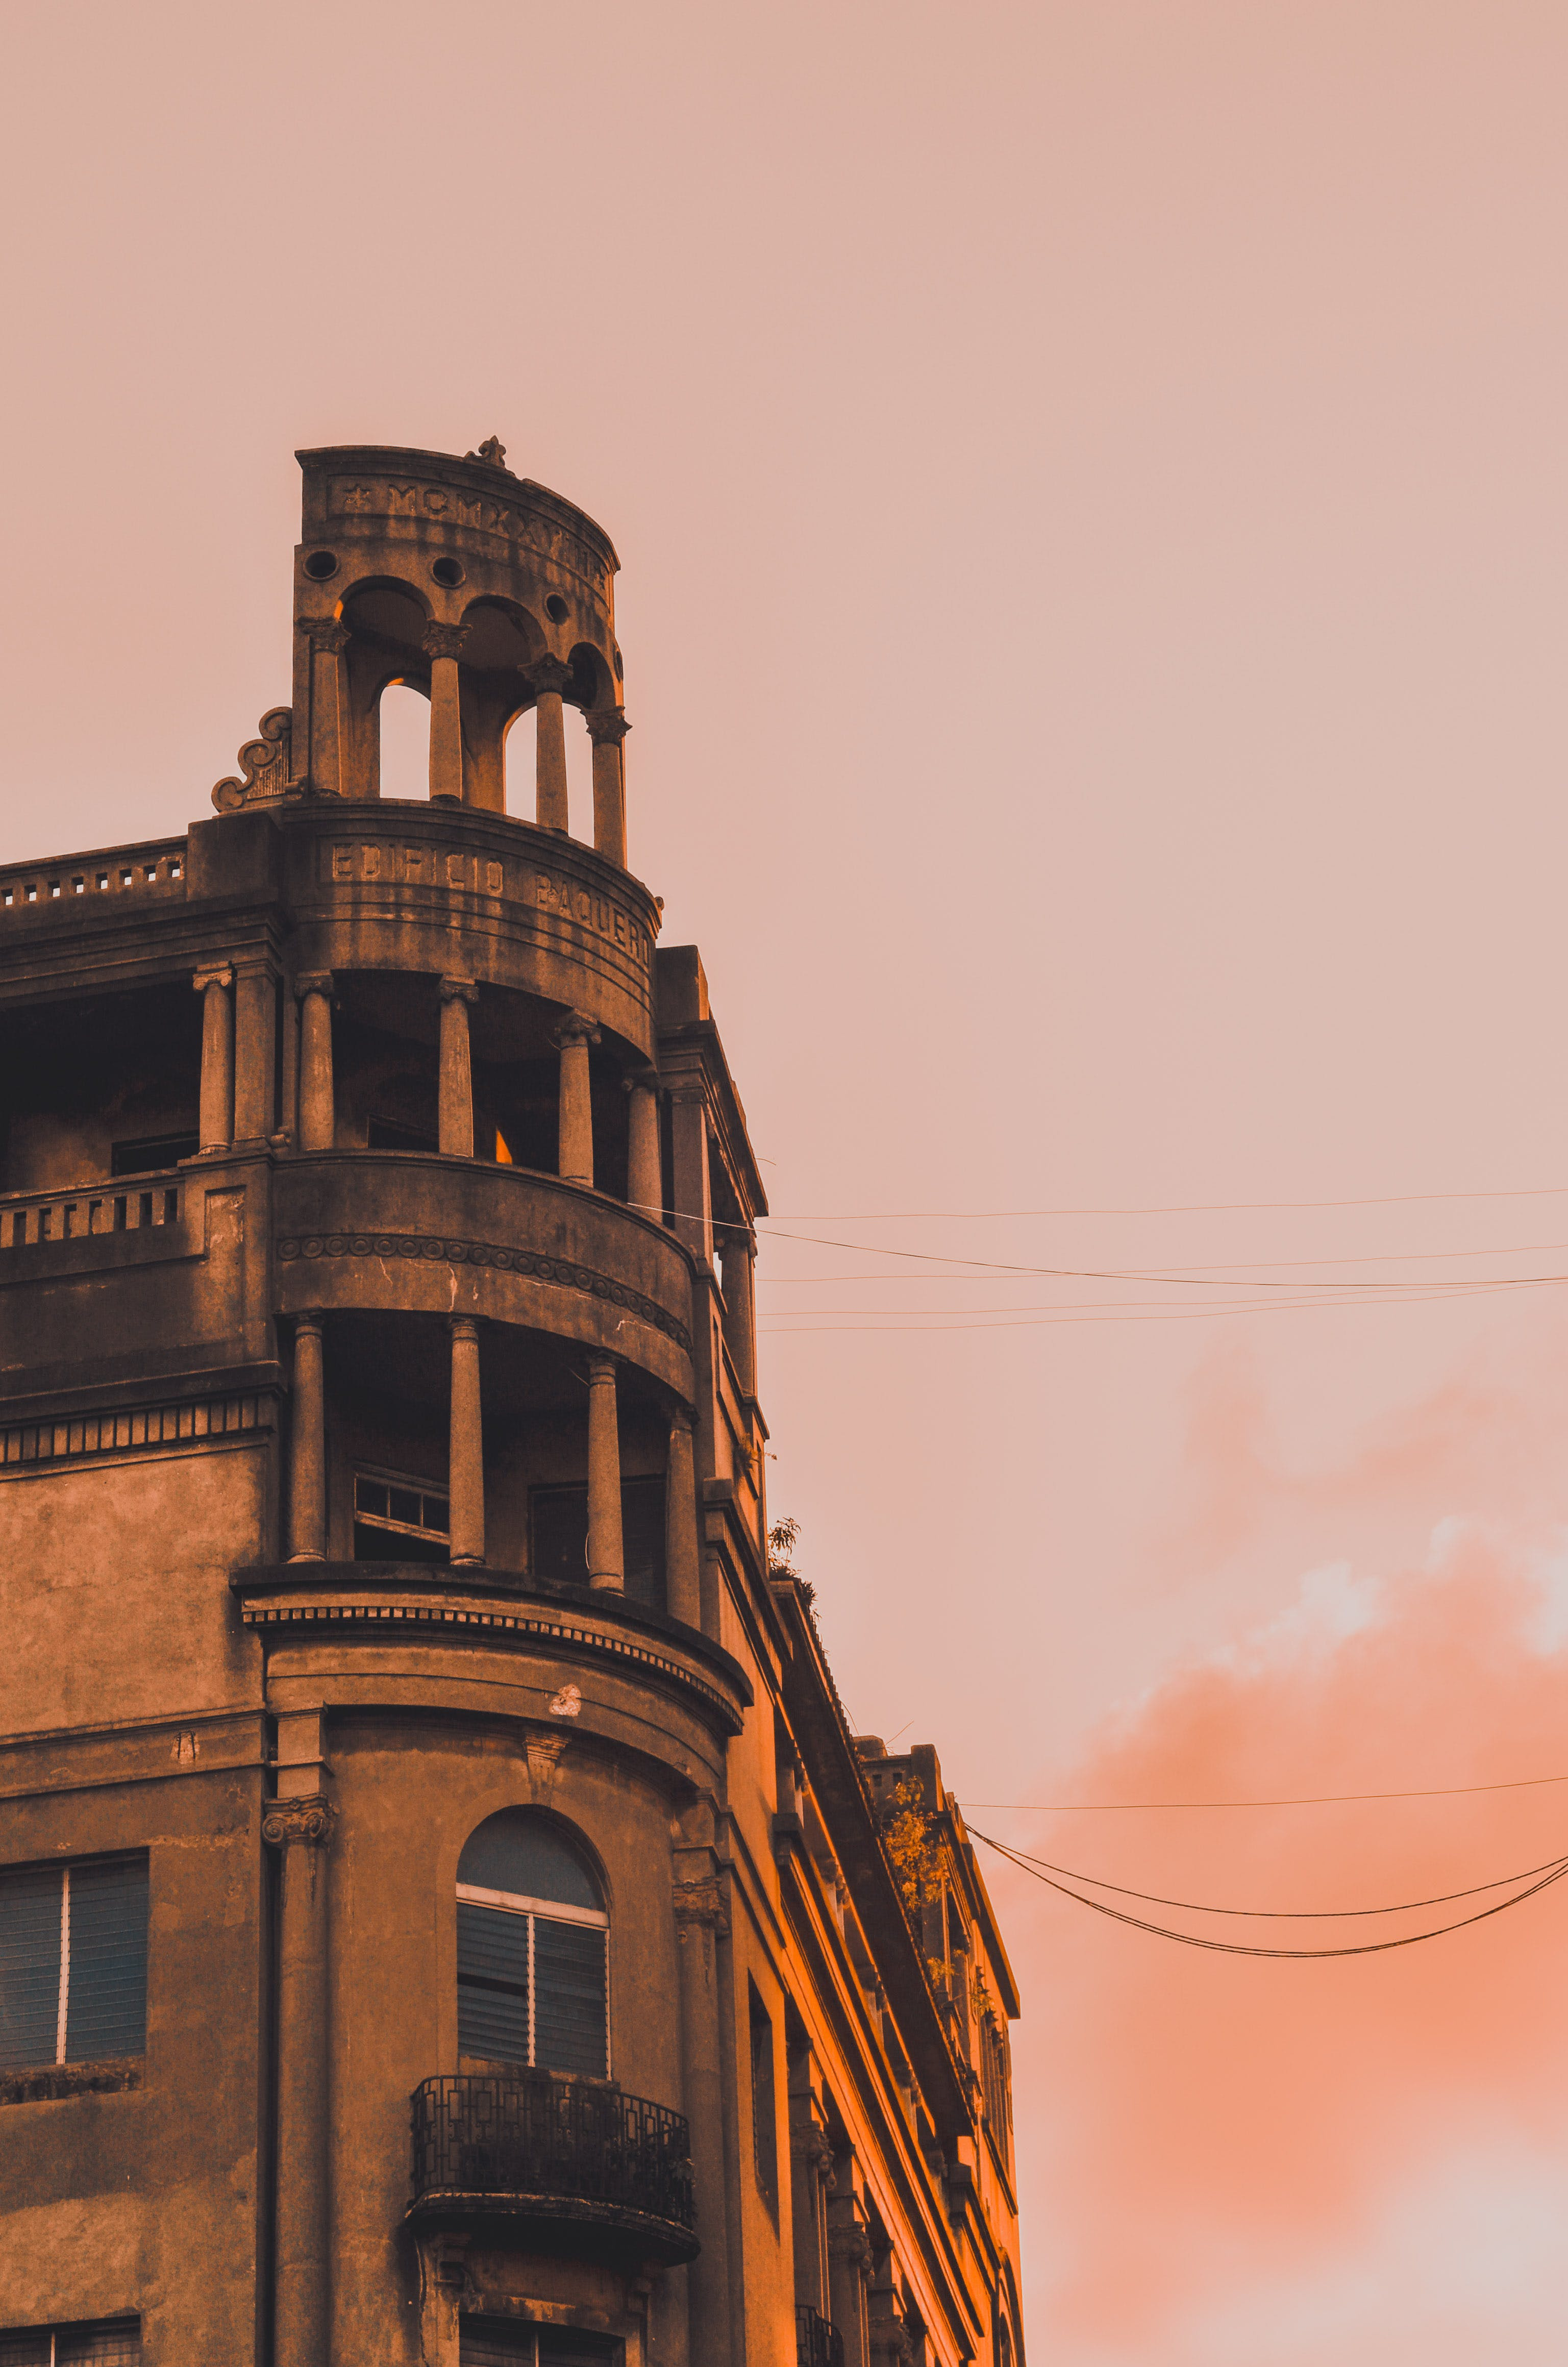 Low Angle Photograph of Building during Golden Hour